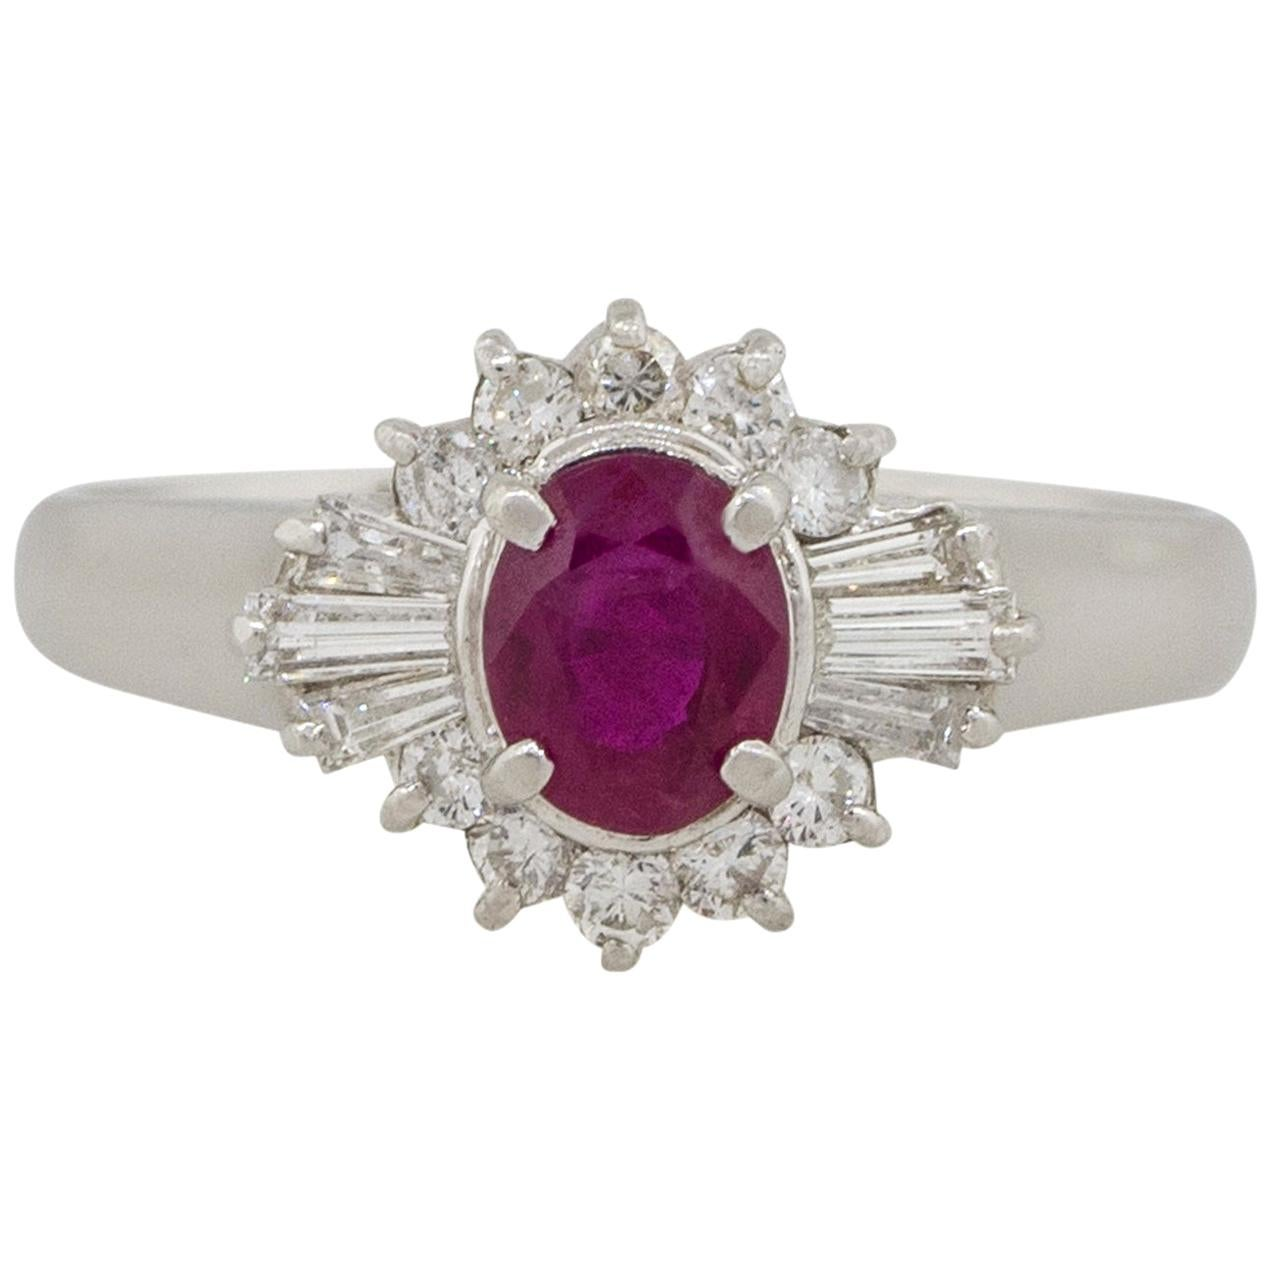 0.70 Carat Bezel Set Oval Cut Ruby Diamond Cocktail Ring Platinum in Stock